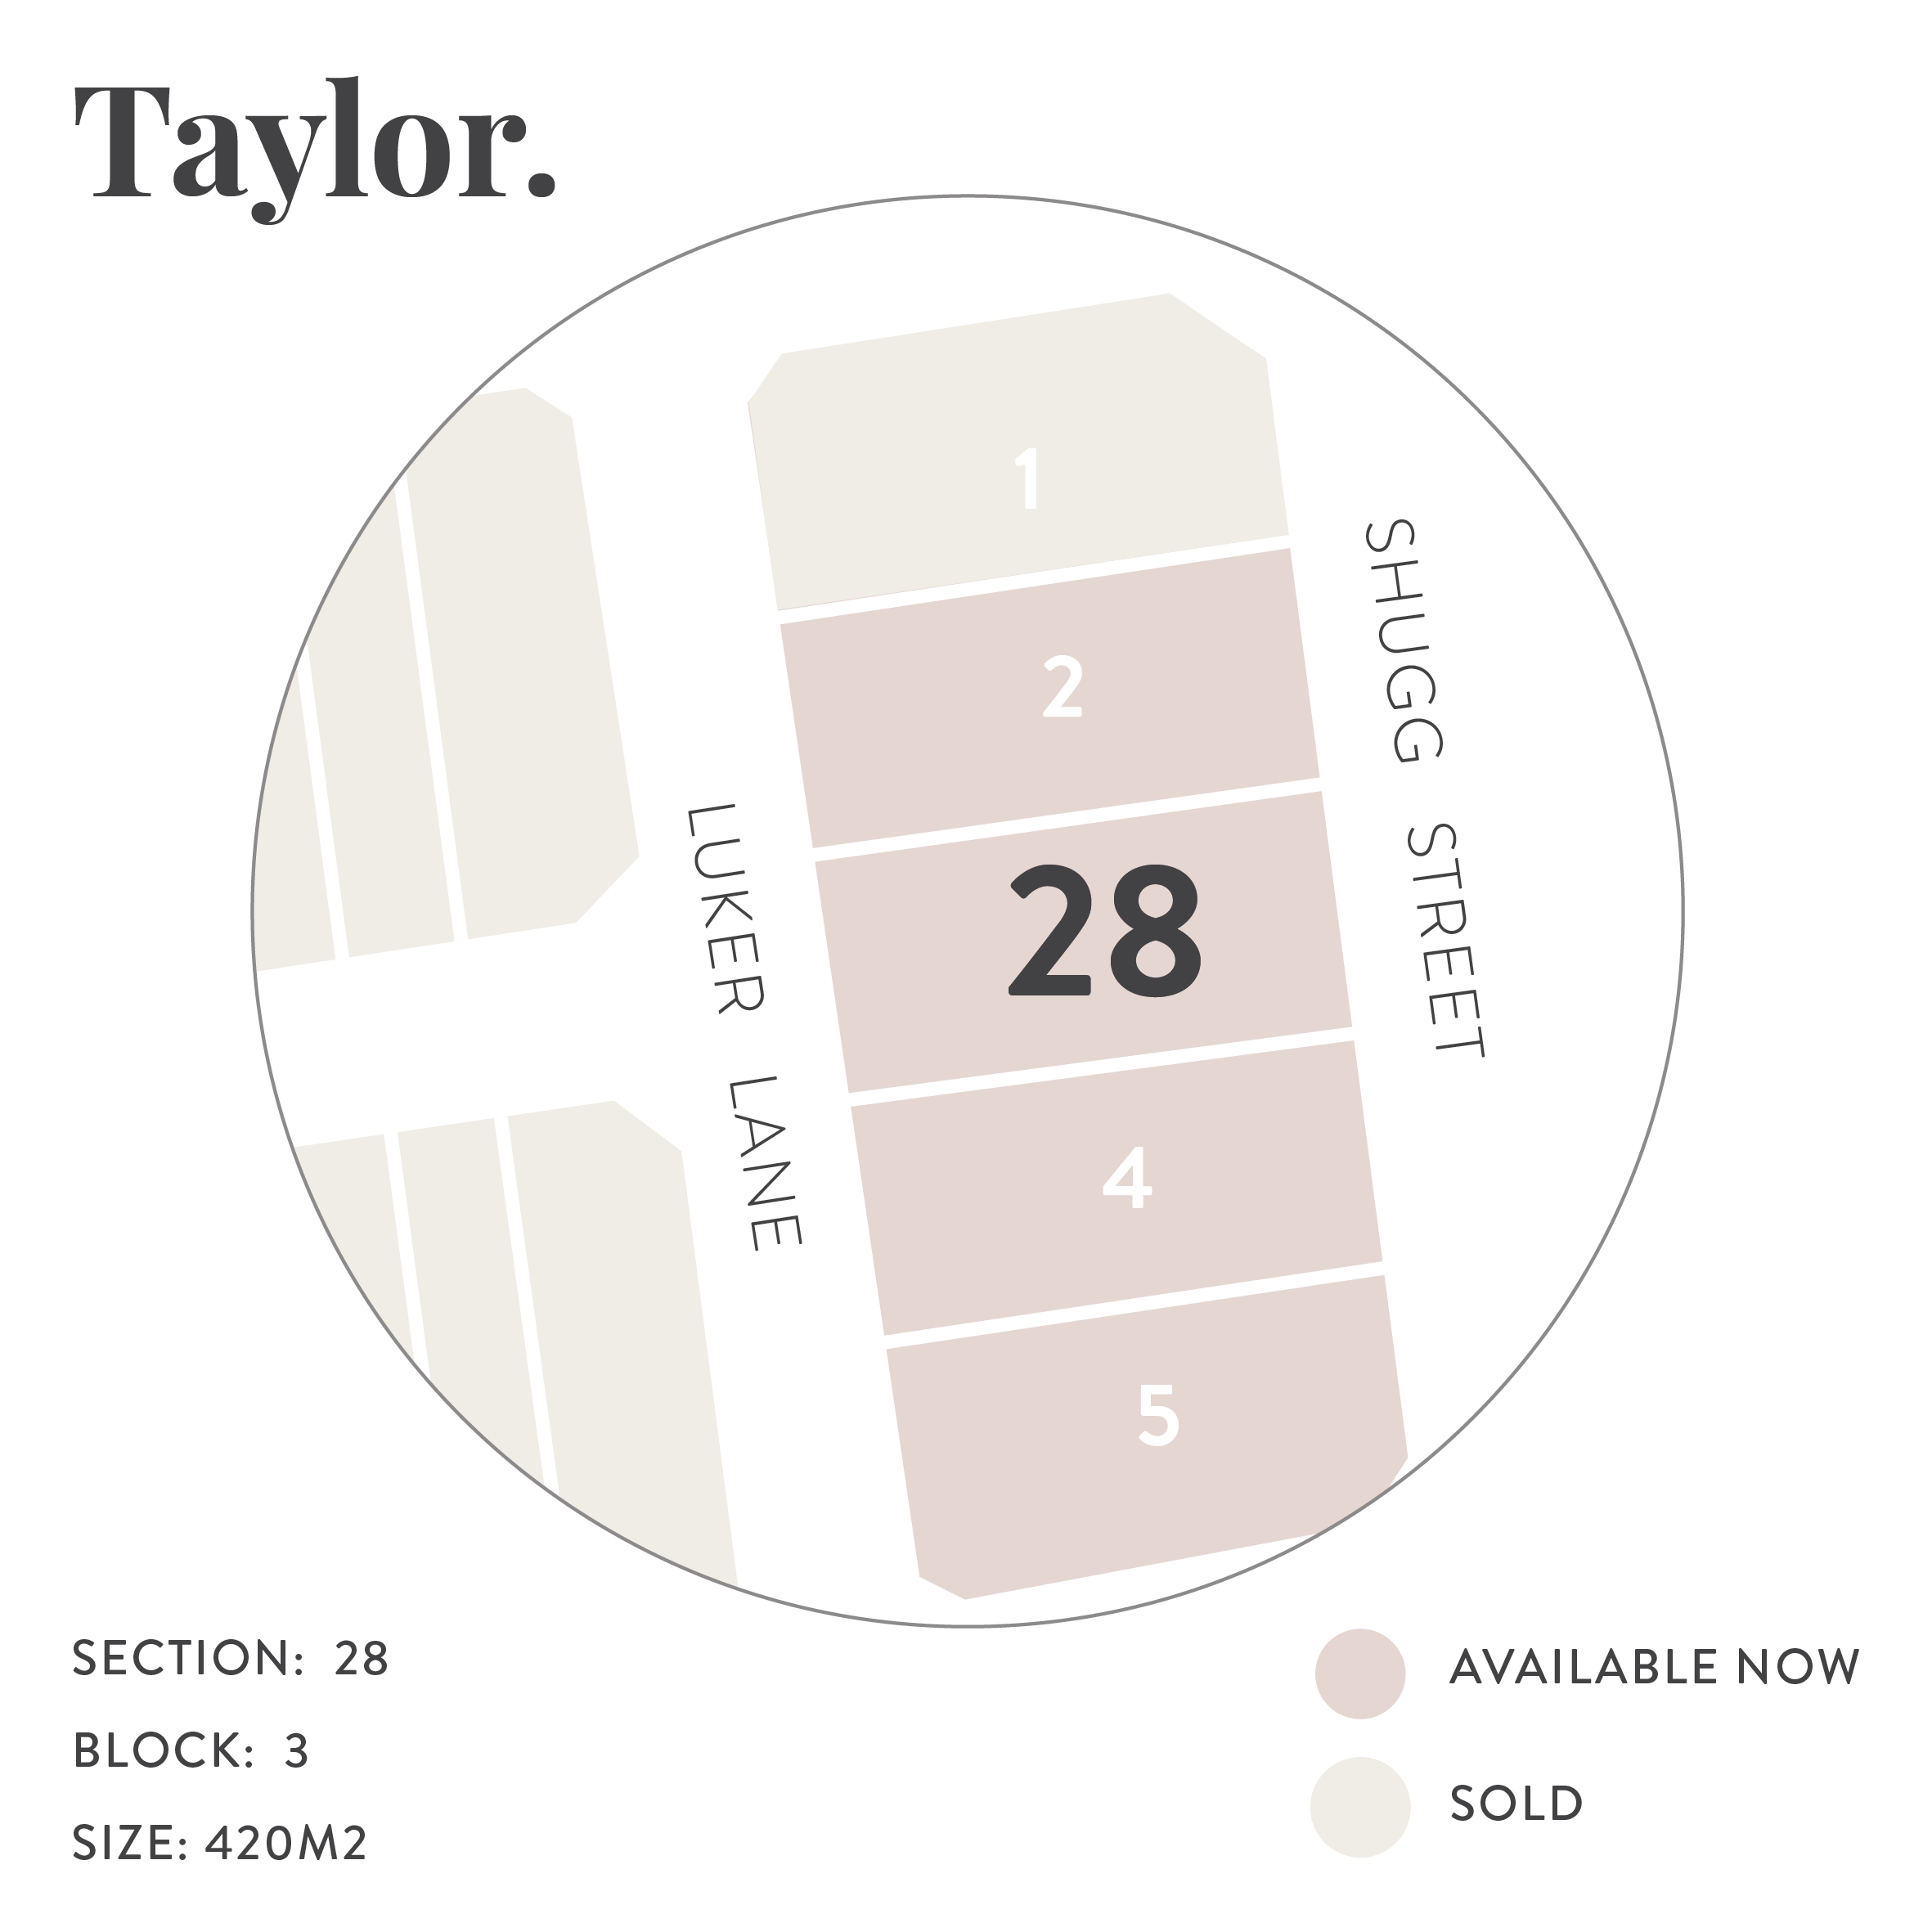 Taylor Land Images-03.png